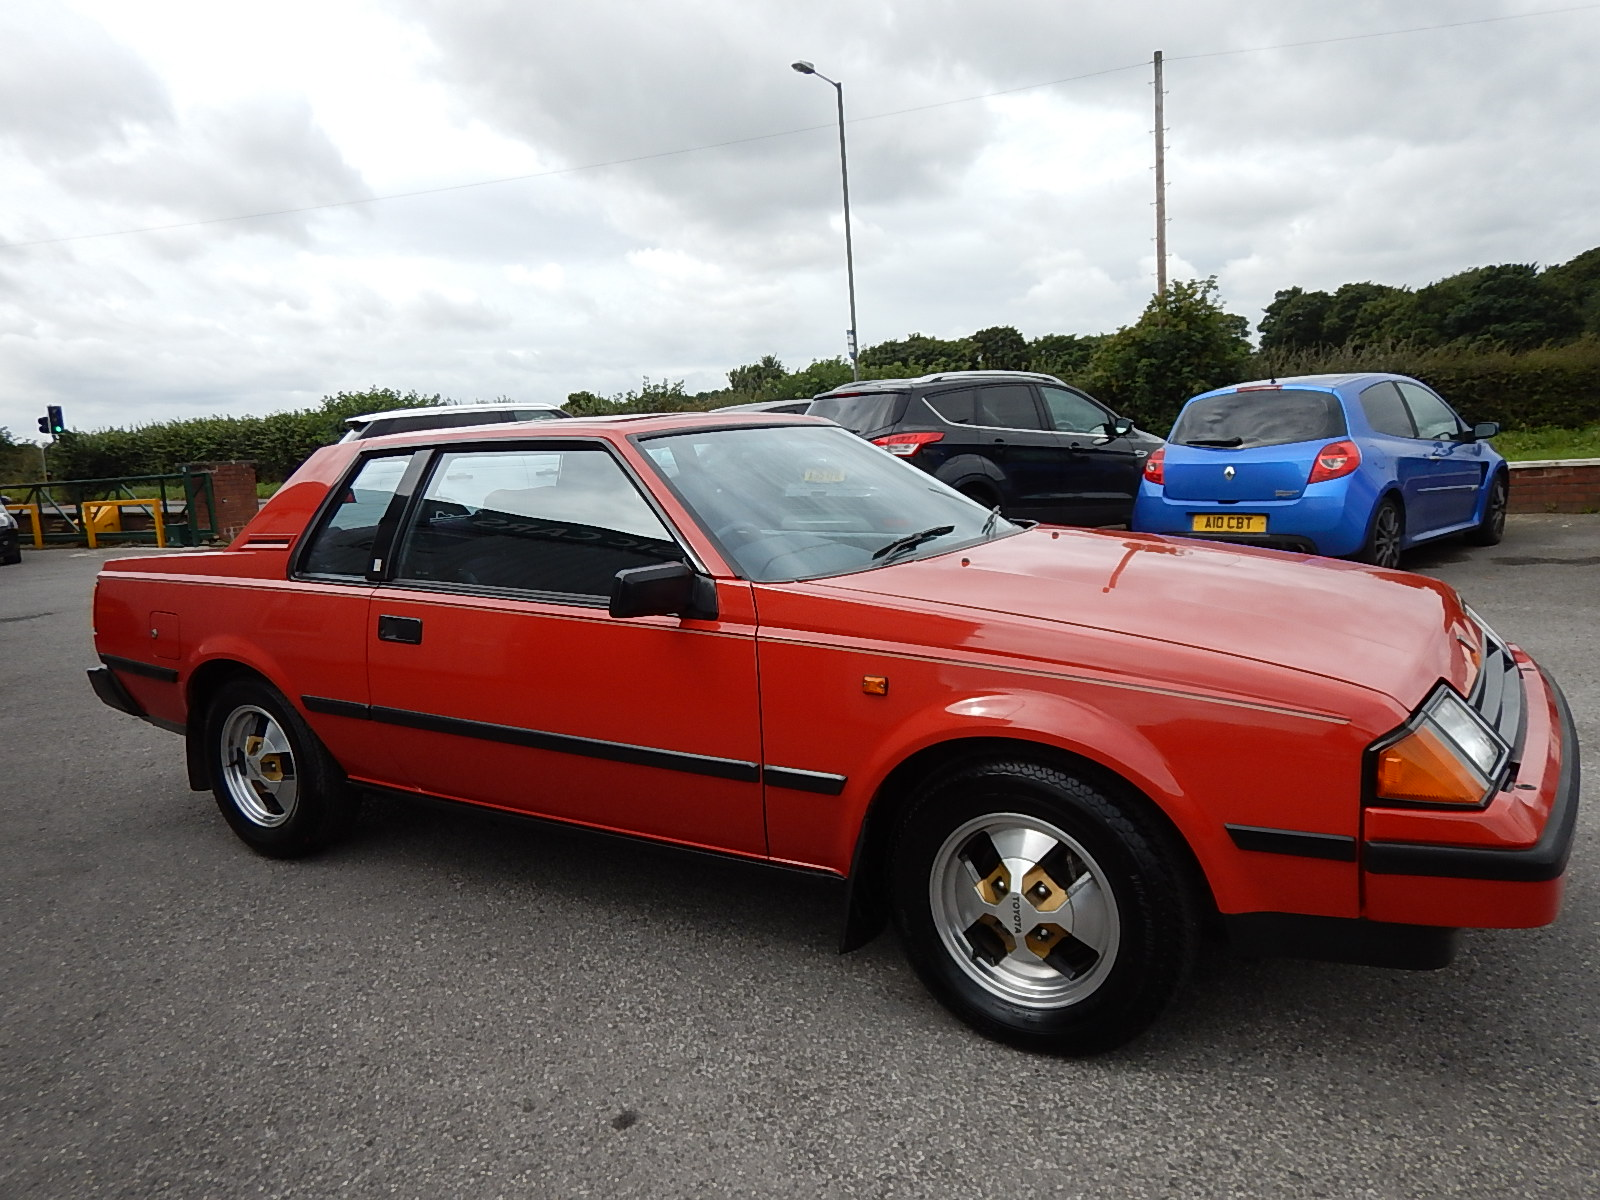 Take to the Road Feature 1983 Toyota Celica 2ltr ST